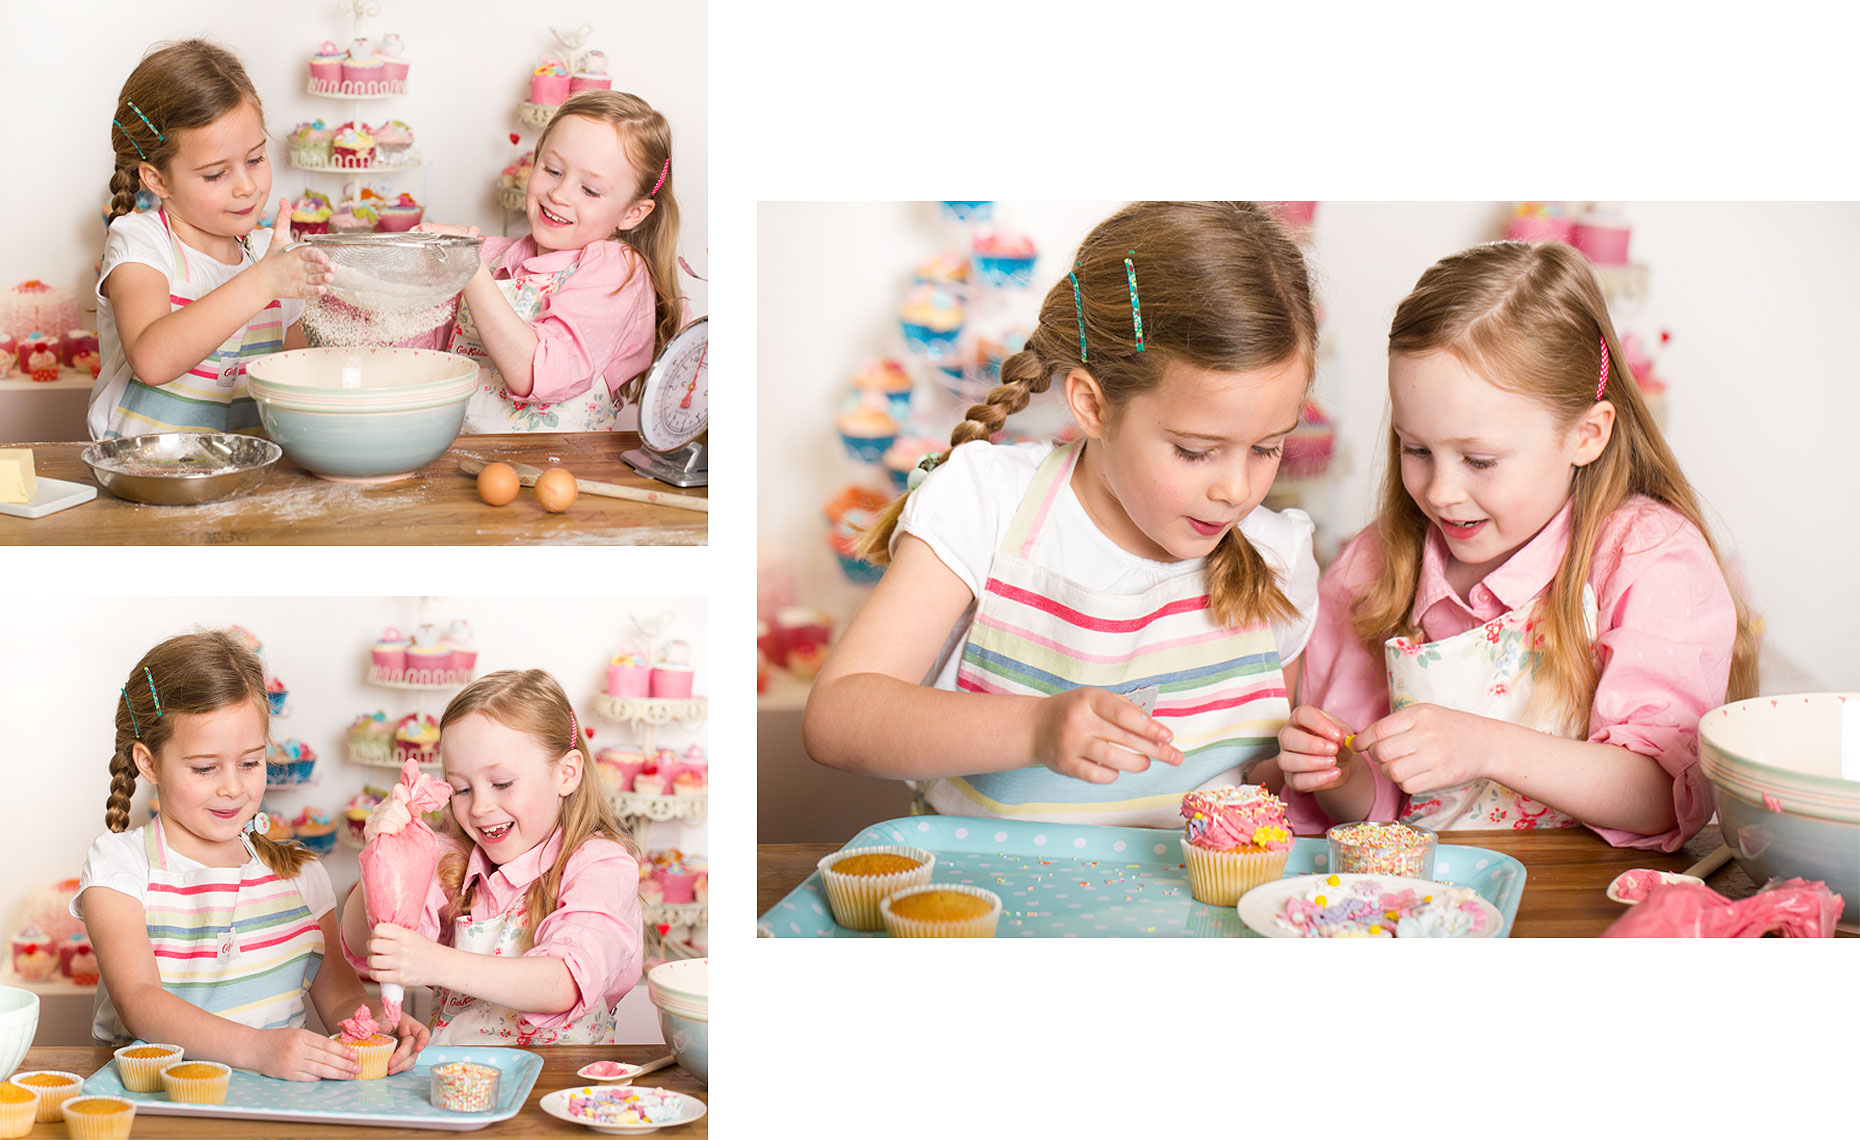 GIRLS-MAKING-CUP-CAKES